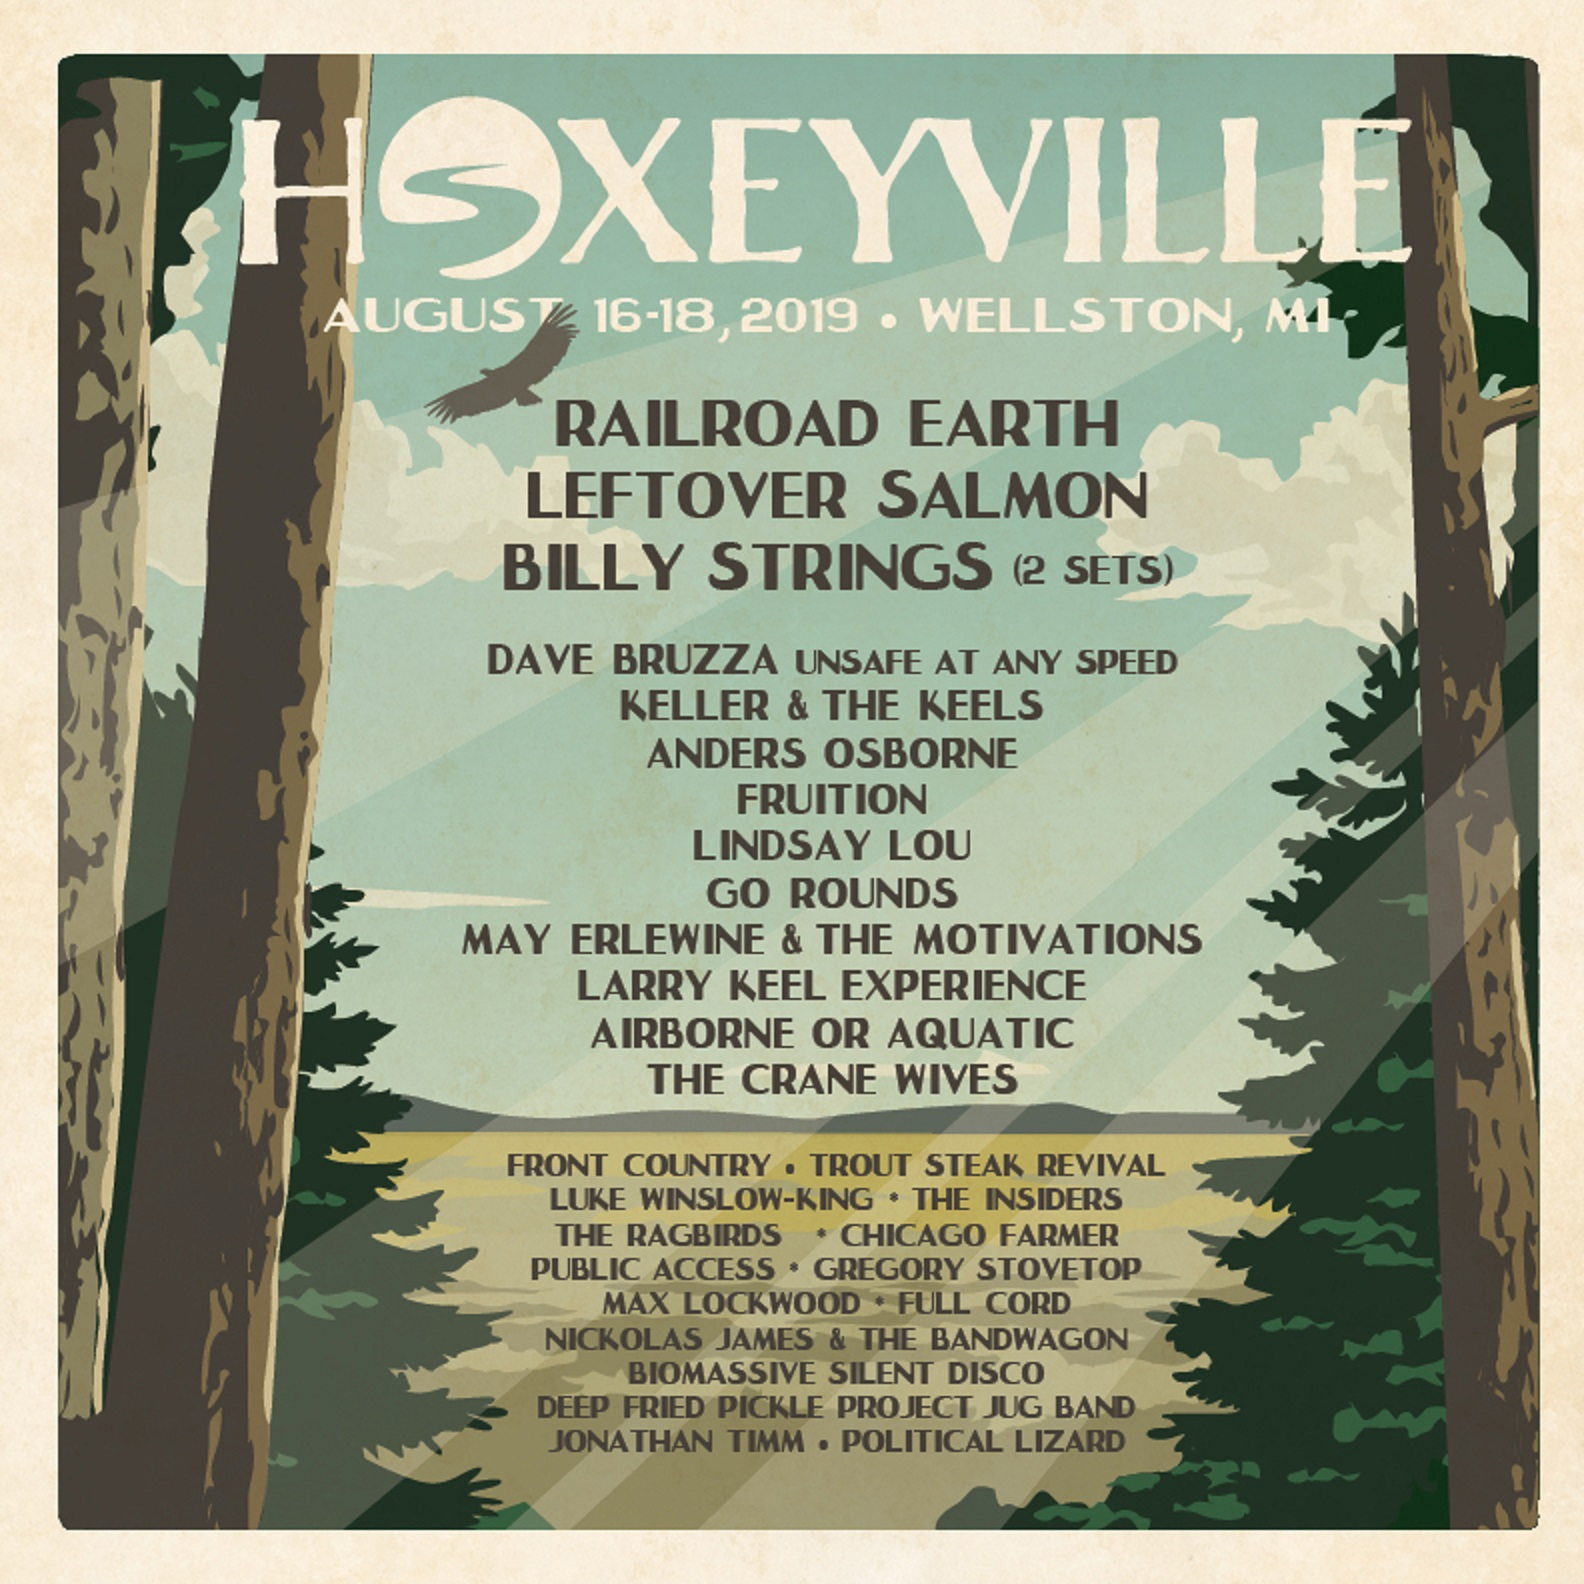 Hoxeyville Music Festival Announces Lineup Additions: Leftover Salmon, Anders Osborne & Go Rounds